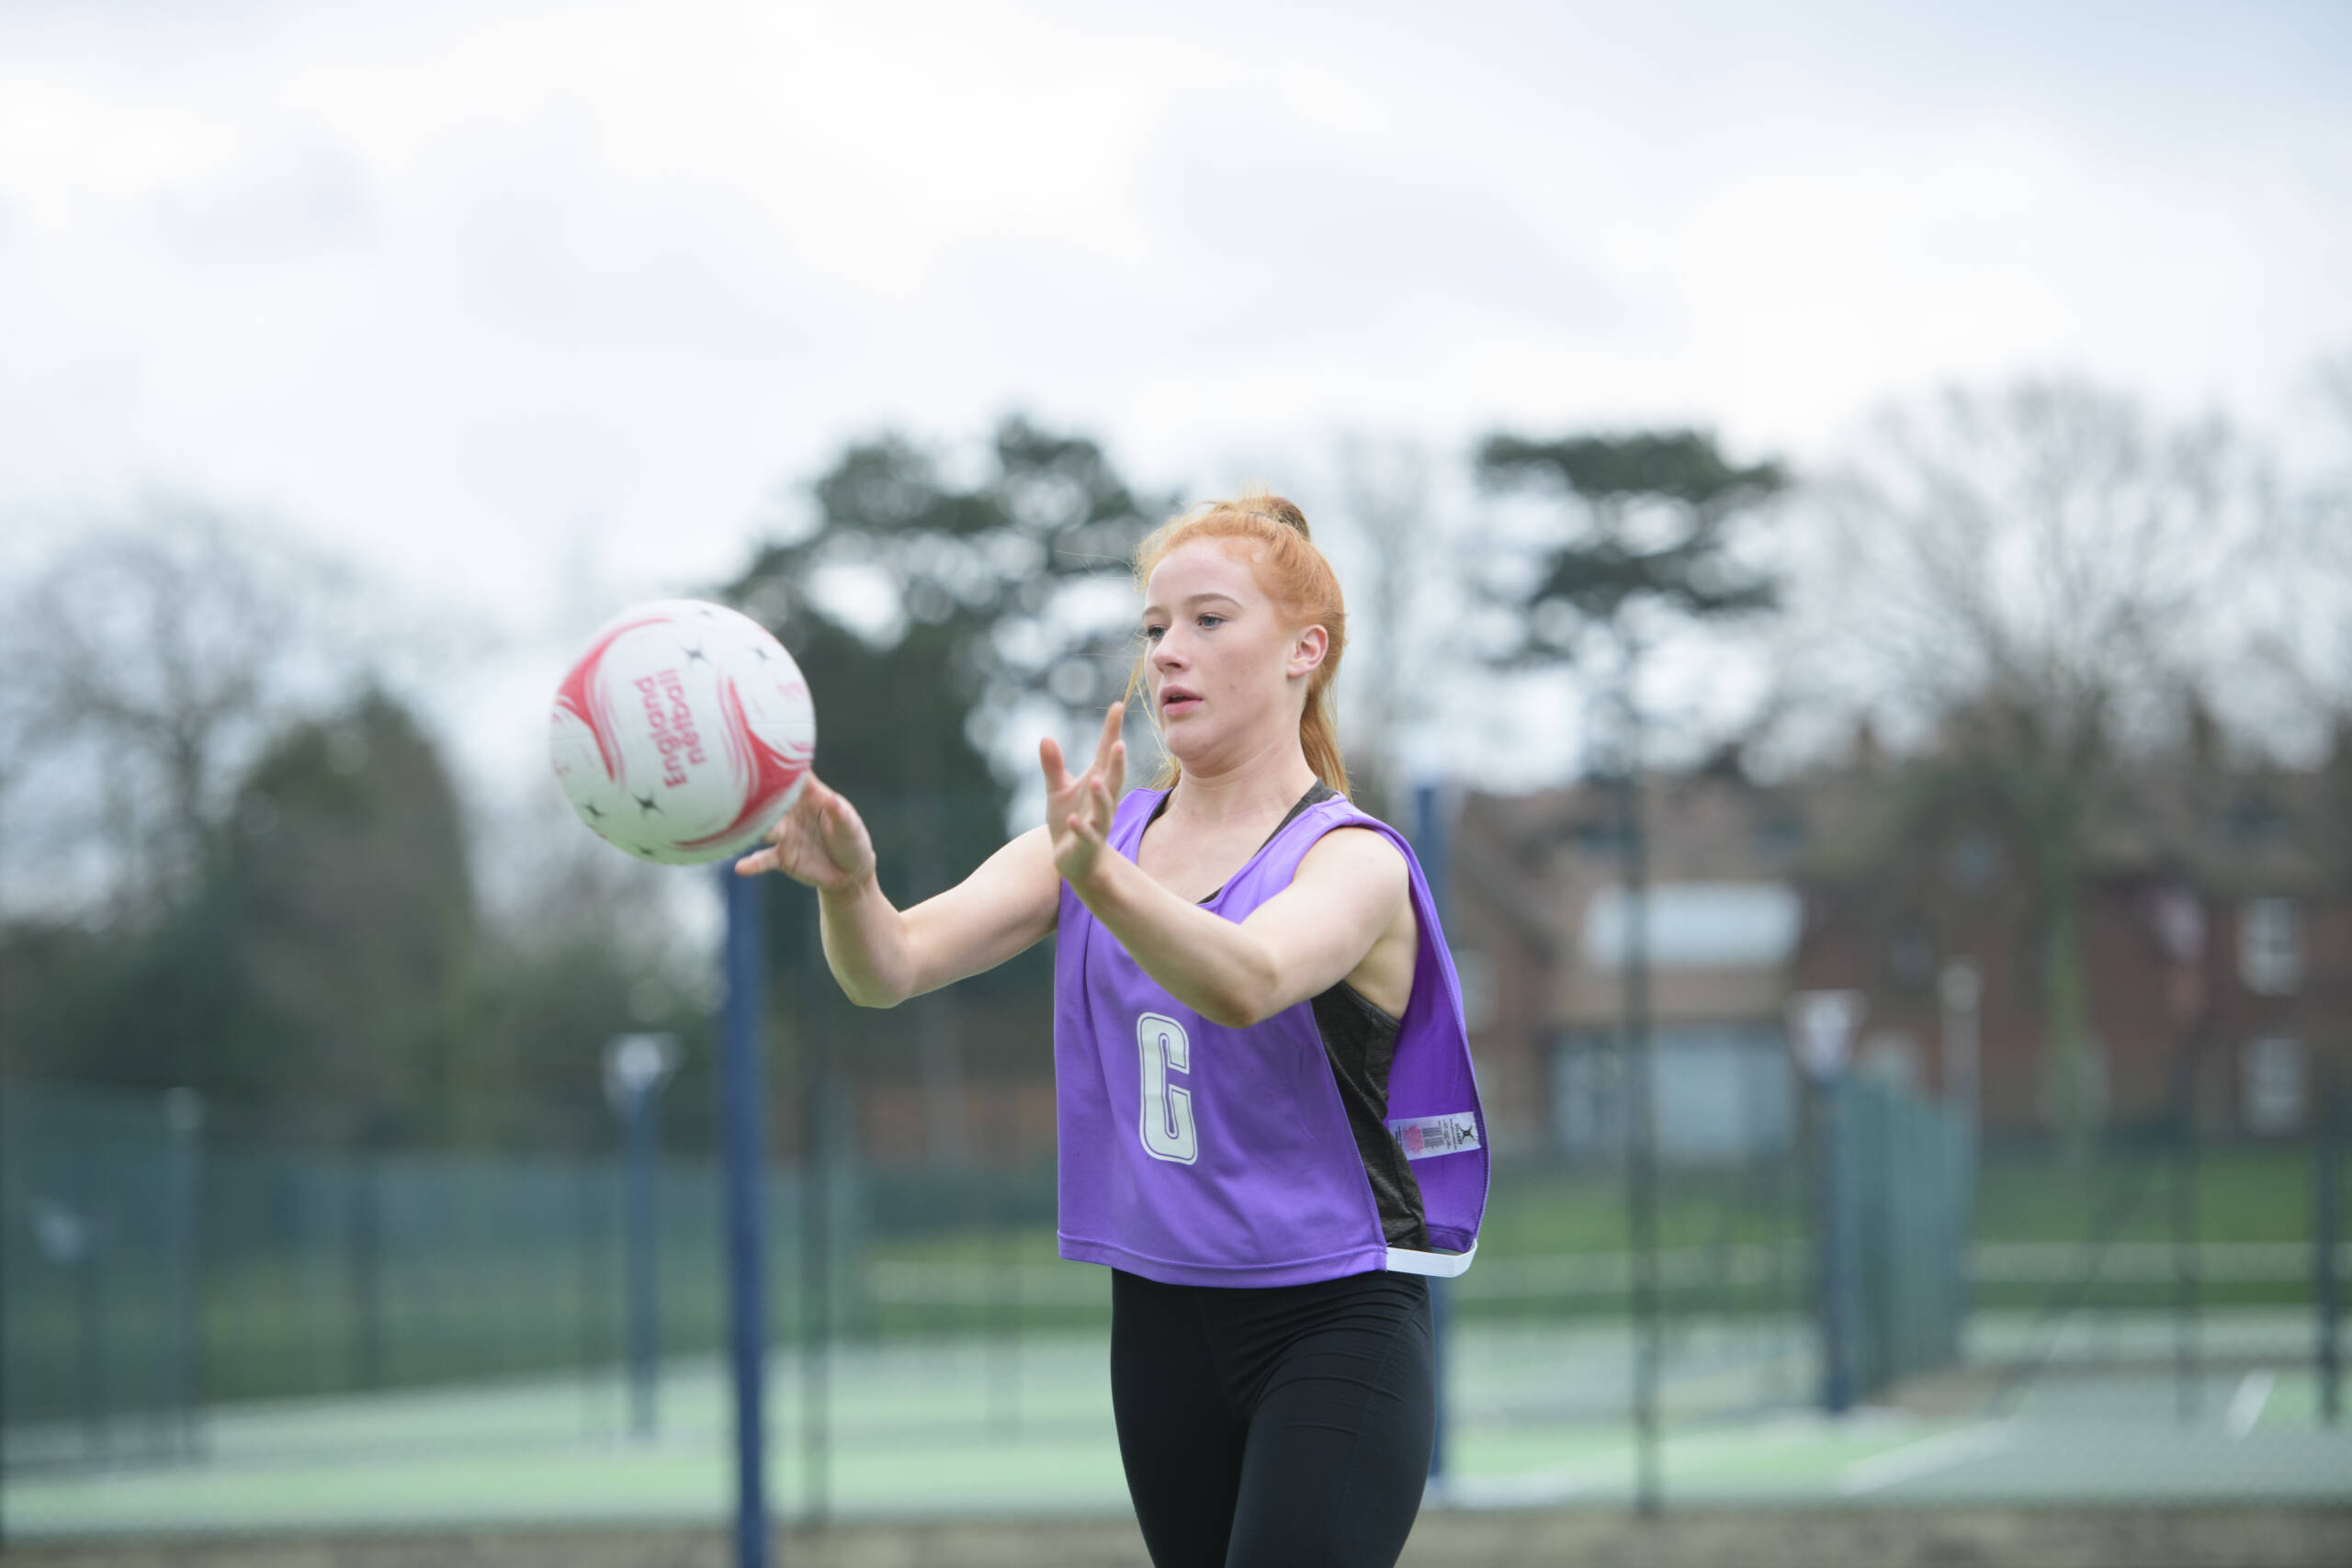 Female playing netball outdoors